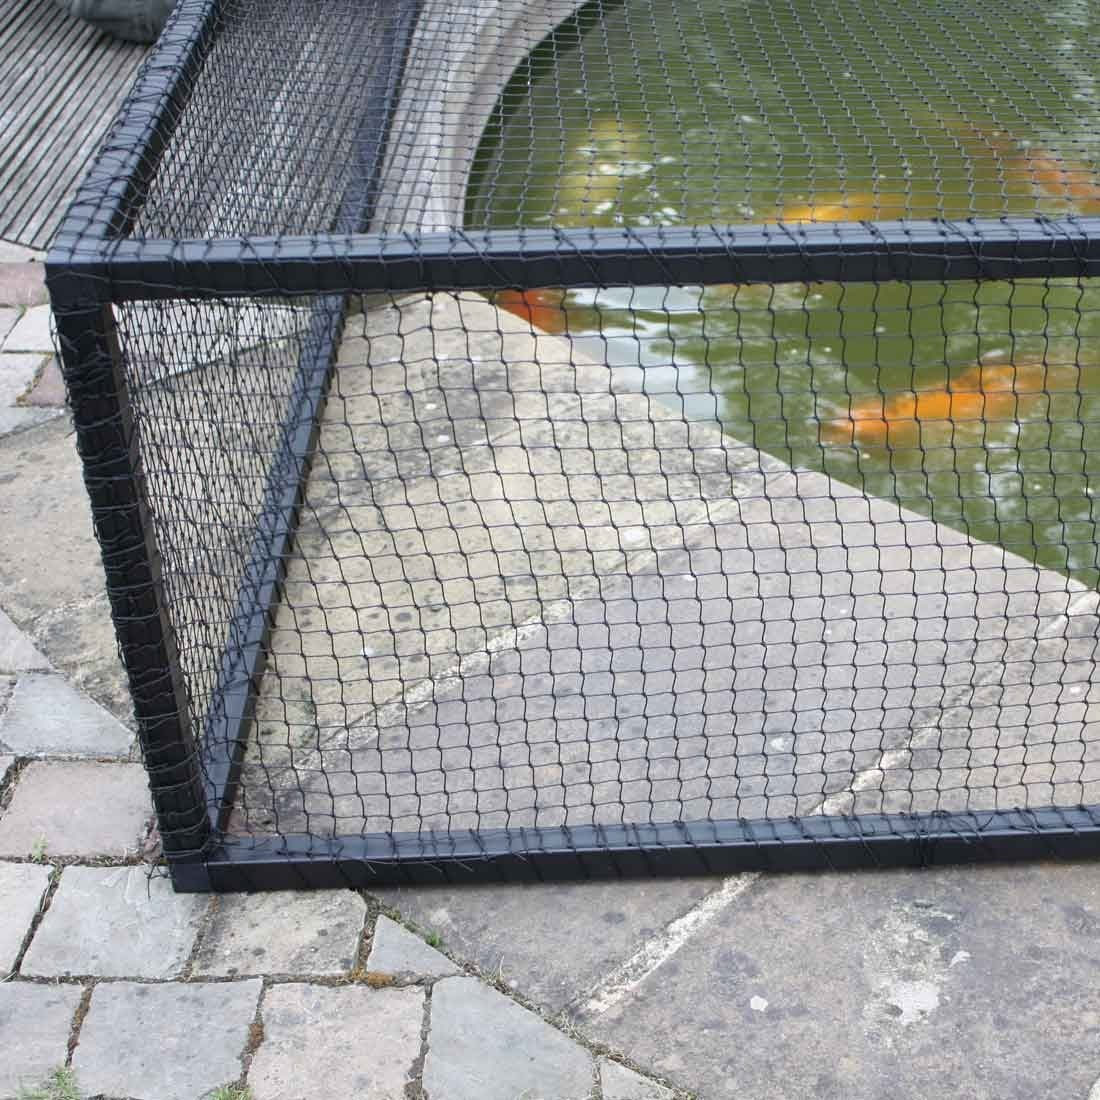 Pond Protection Covers Netting Harrod Hoticultural